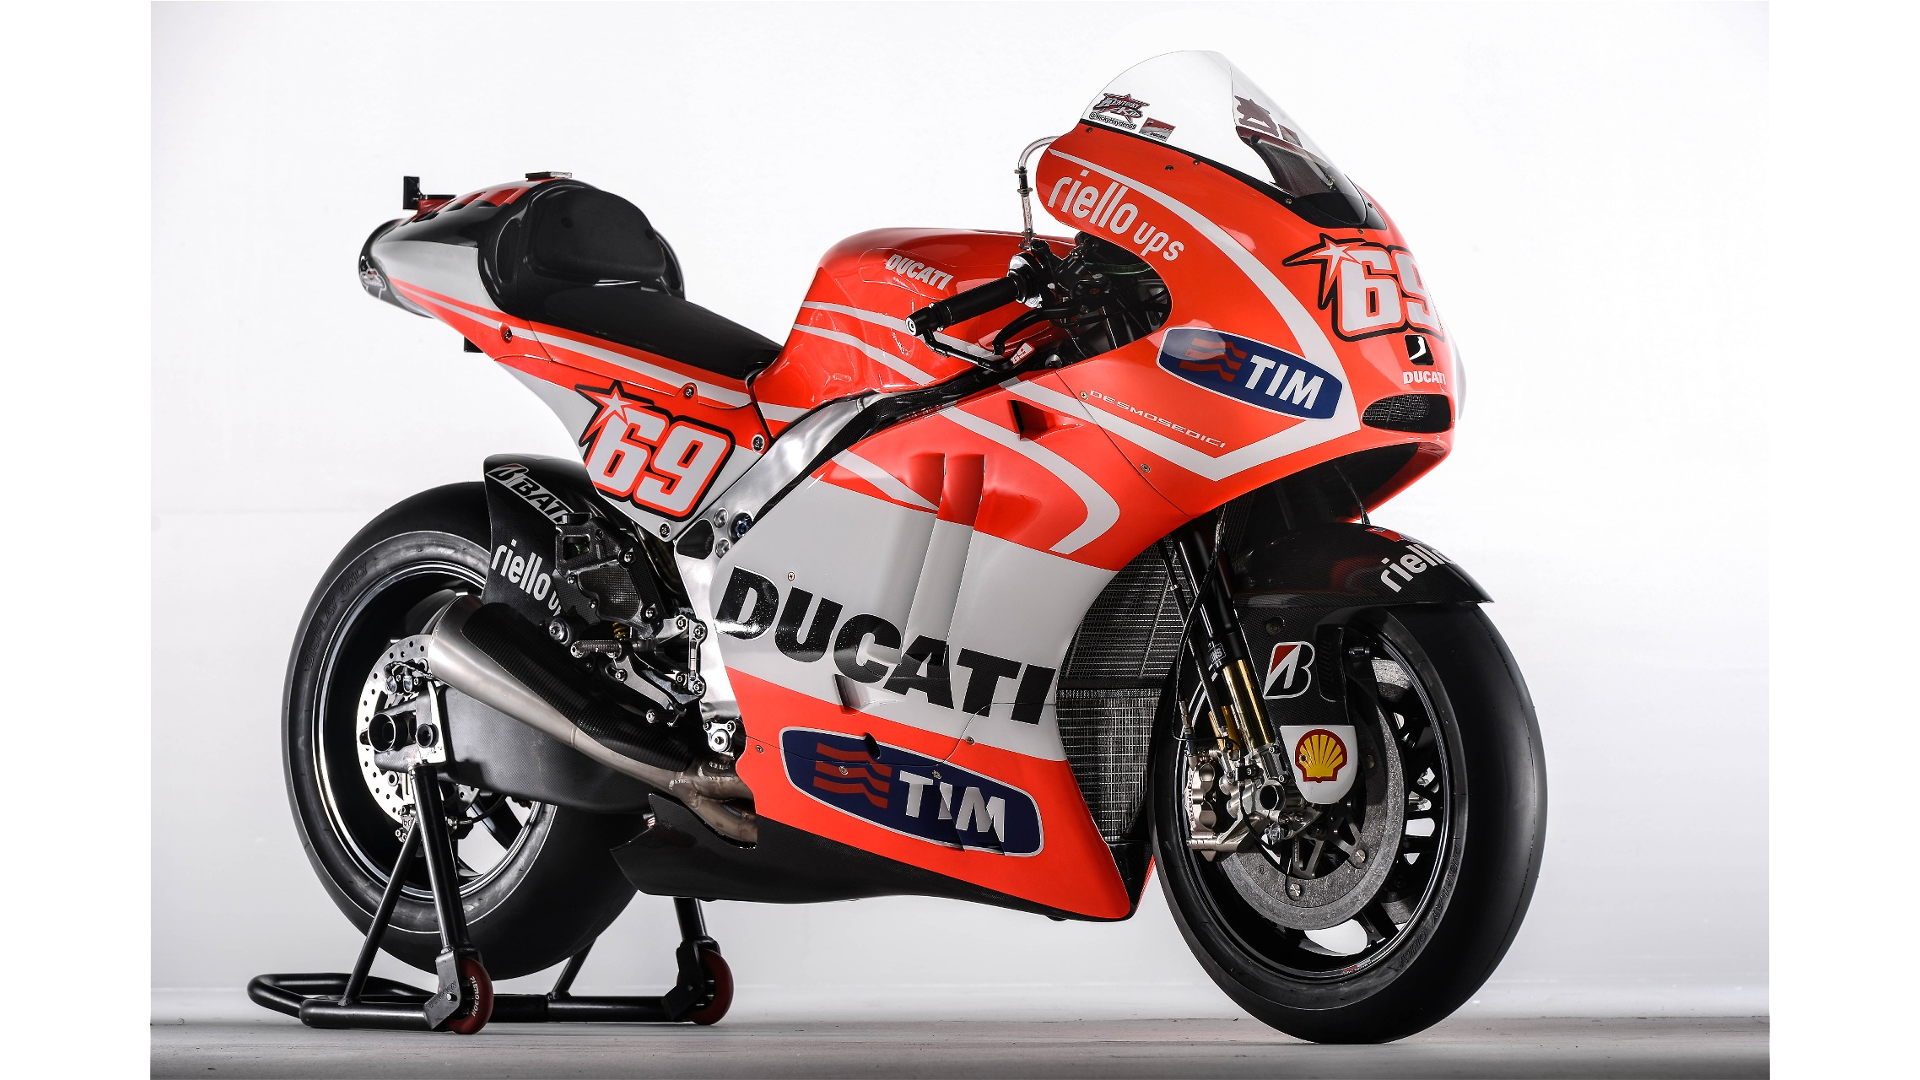 Ducati GP13 - Page 2 Resized_00036952.mediagallery_output_image_%5B1920x1080%5D-O